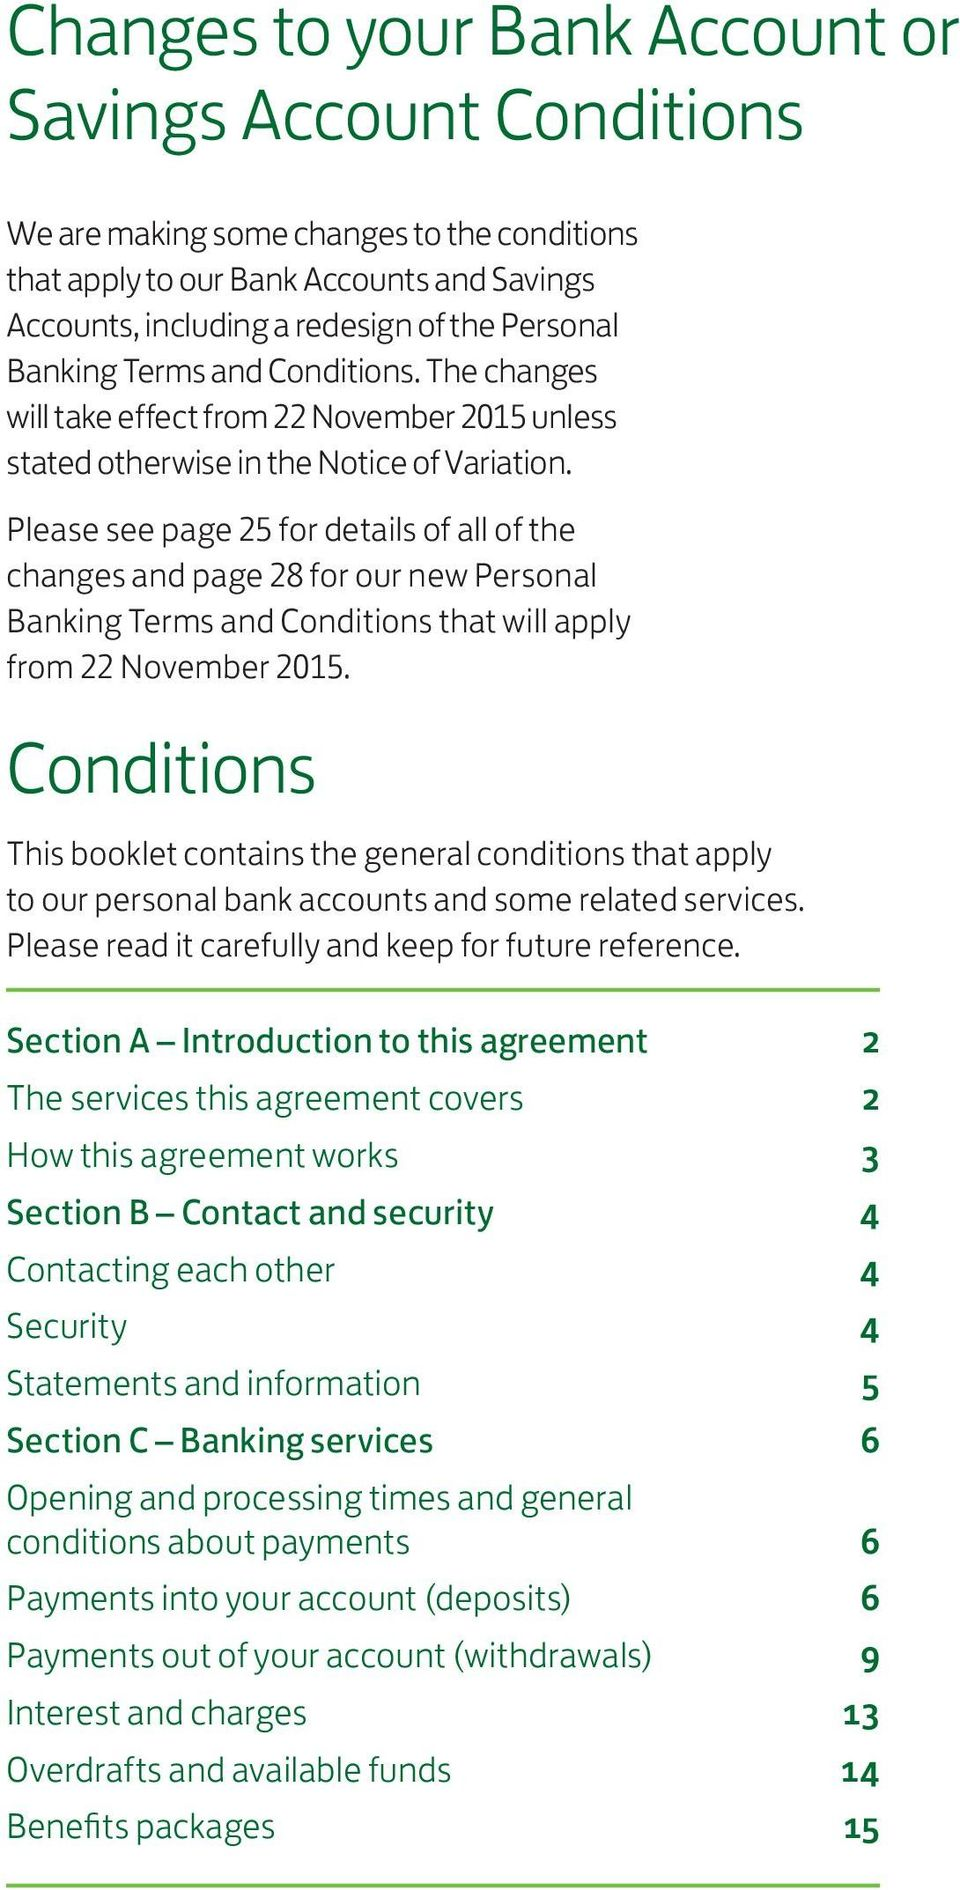 Please see page 25 for details of all of the changes and page 28 for our new Personal Banking Terms and Conditions that will apply from 22 November 2015.